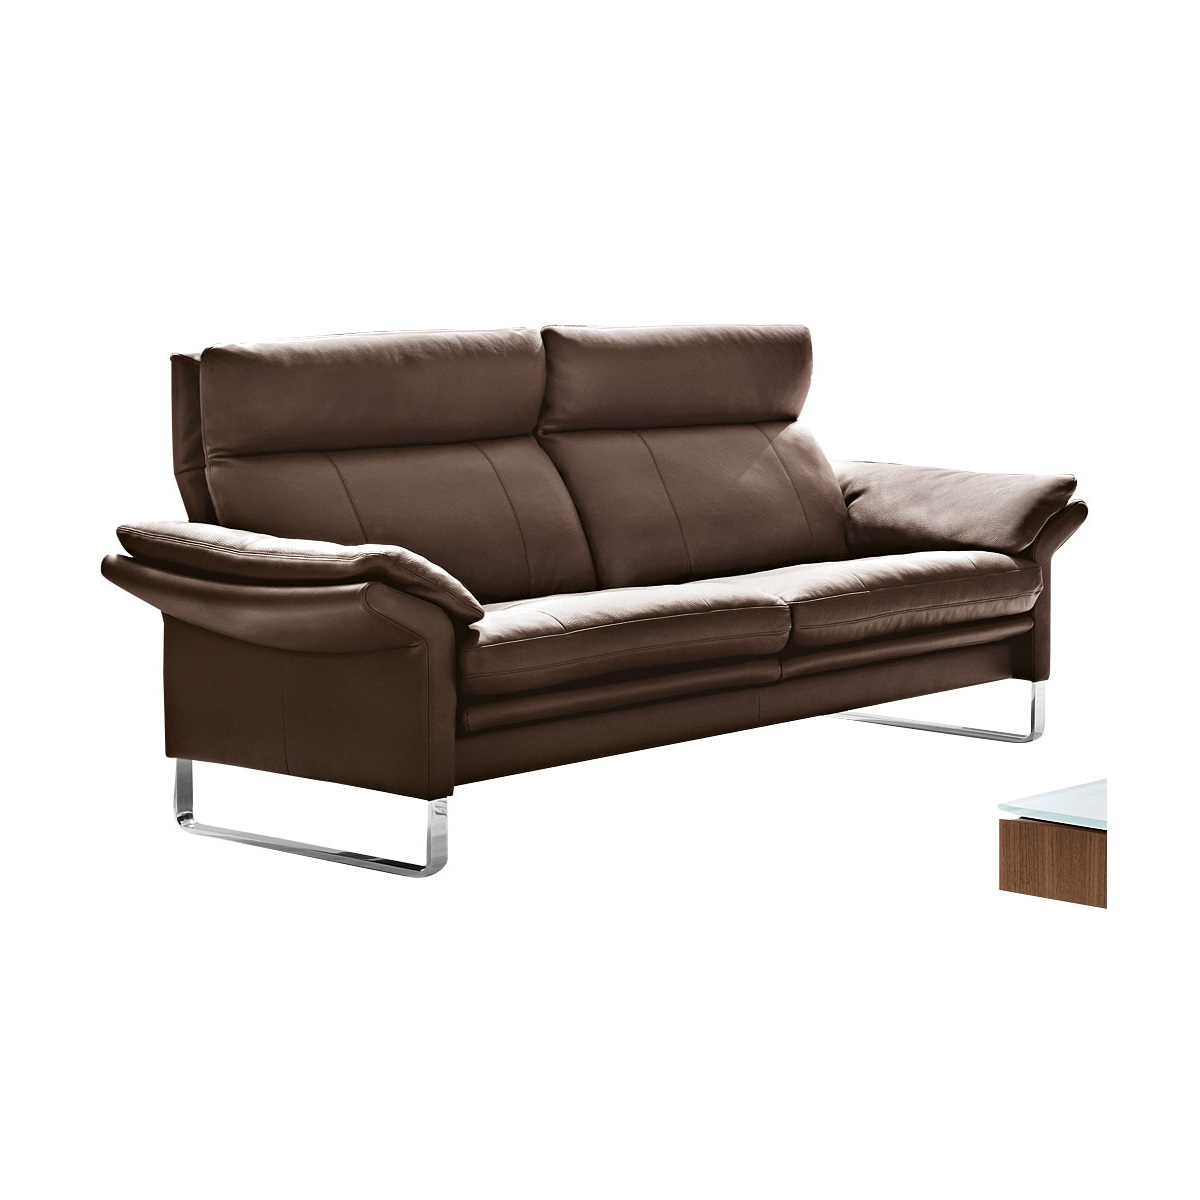 Full Size of Erpo Sofa 2 Leder Husse Grau Mit Relaxfunktion Elektrisch Angebote Chippendale Abnehmbarer Bezug Arten U Form Franz Fertig De Sede Ottomane Chesterfield Canape Sofa Erpo Sofa